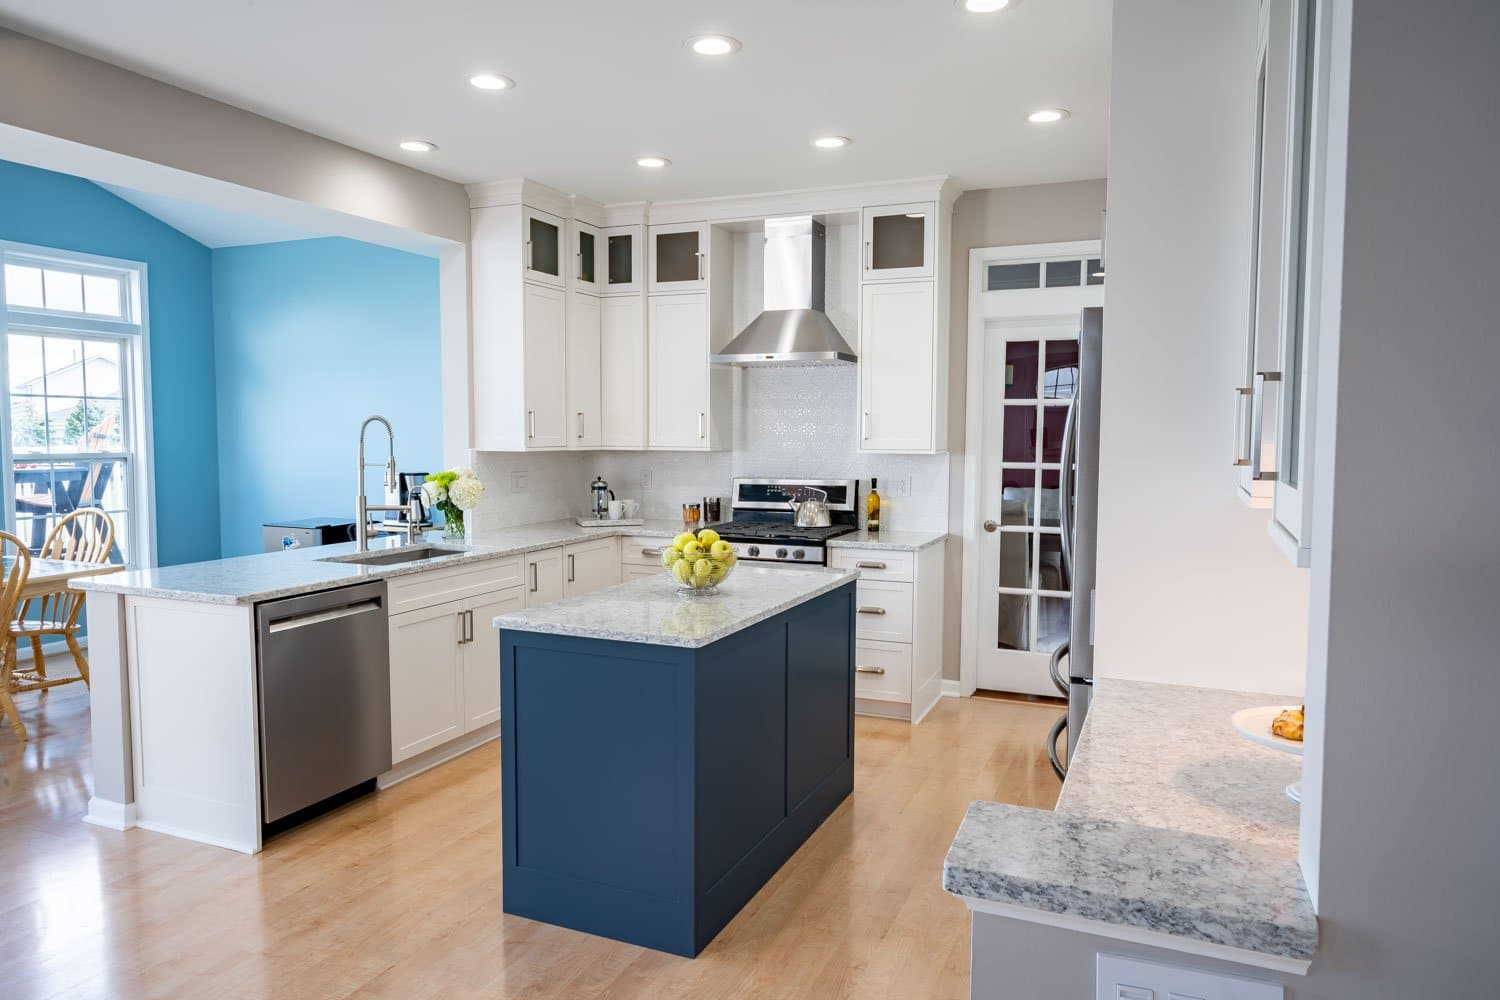 Transitional With A Pop Of Color Kitchen Remodel Empiregmq Buffalo Ny